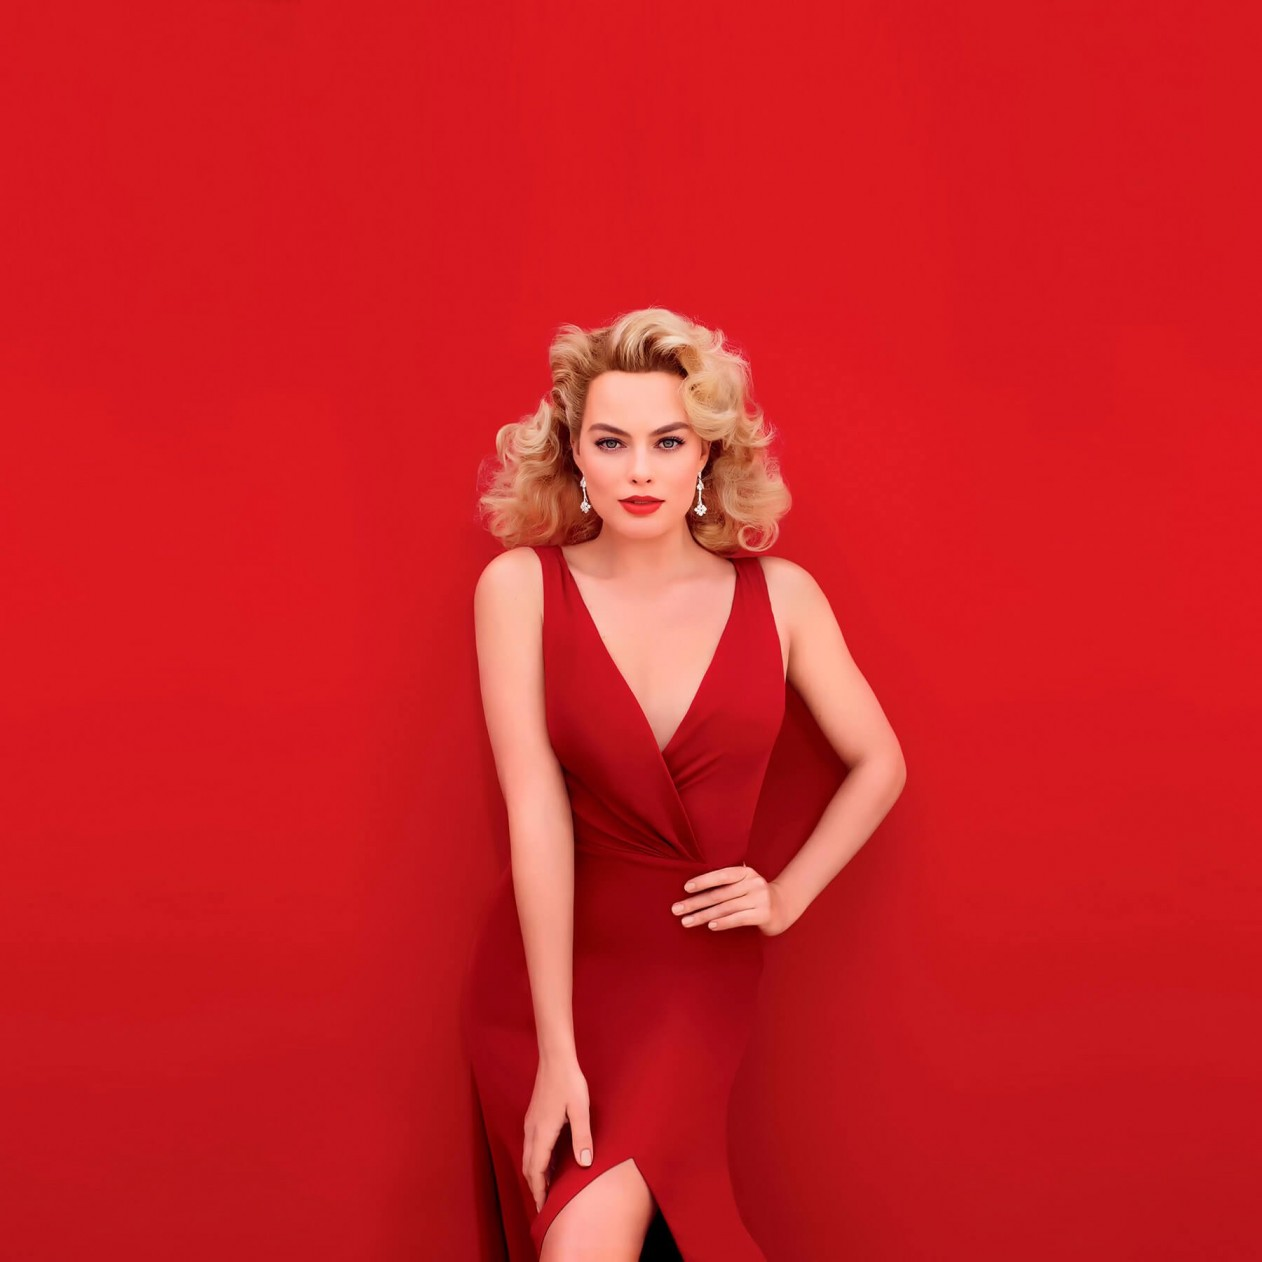 Margot Robbie In Red Wallpaper for Apple iPad mini